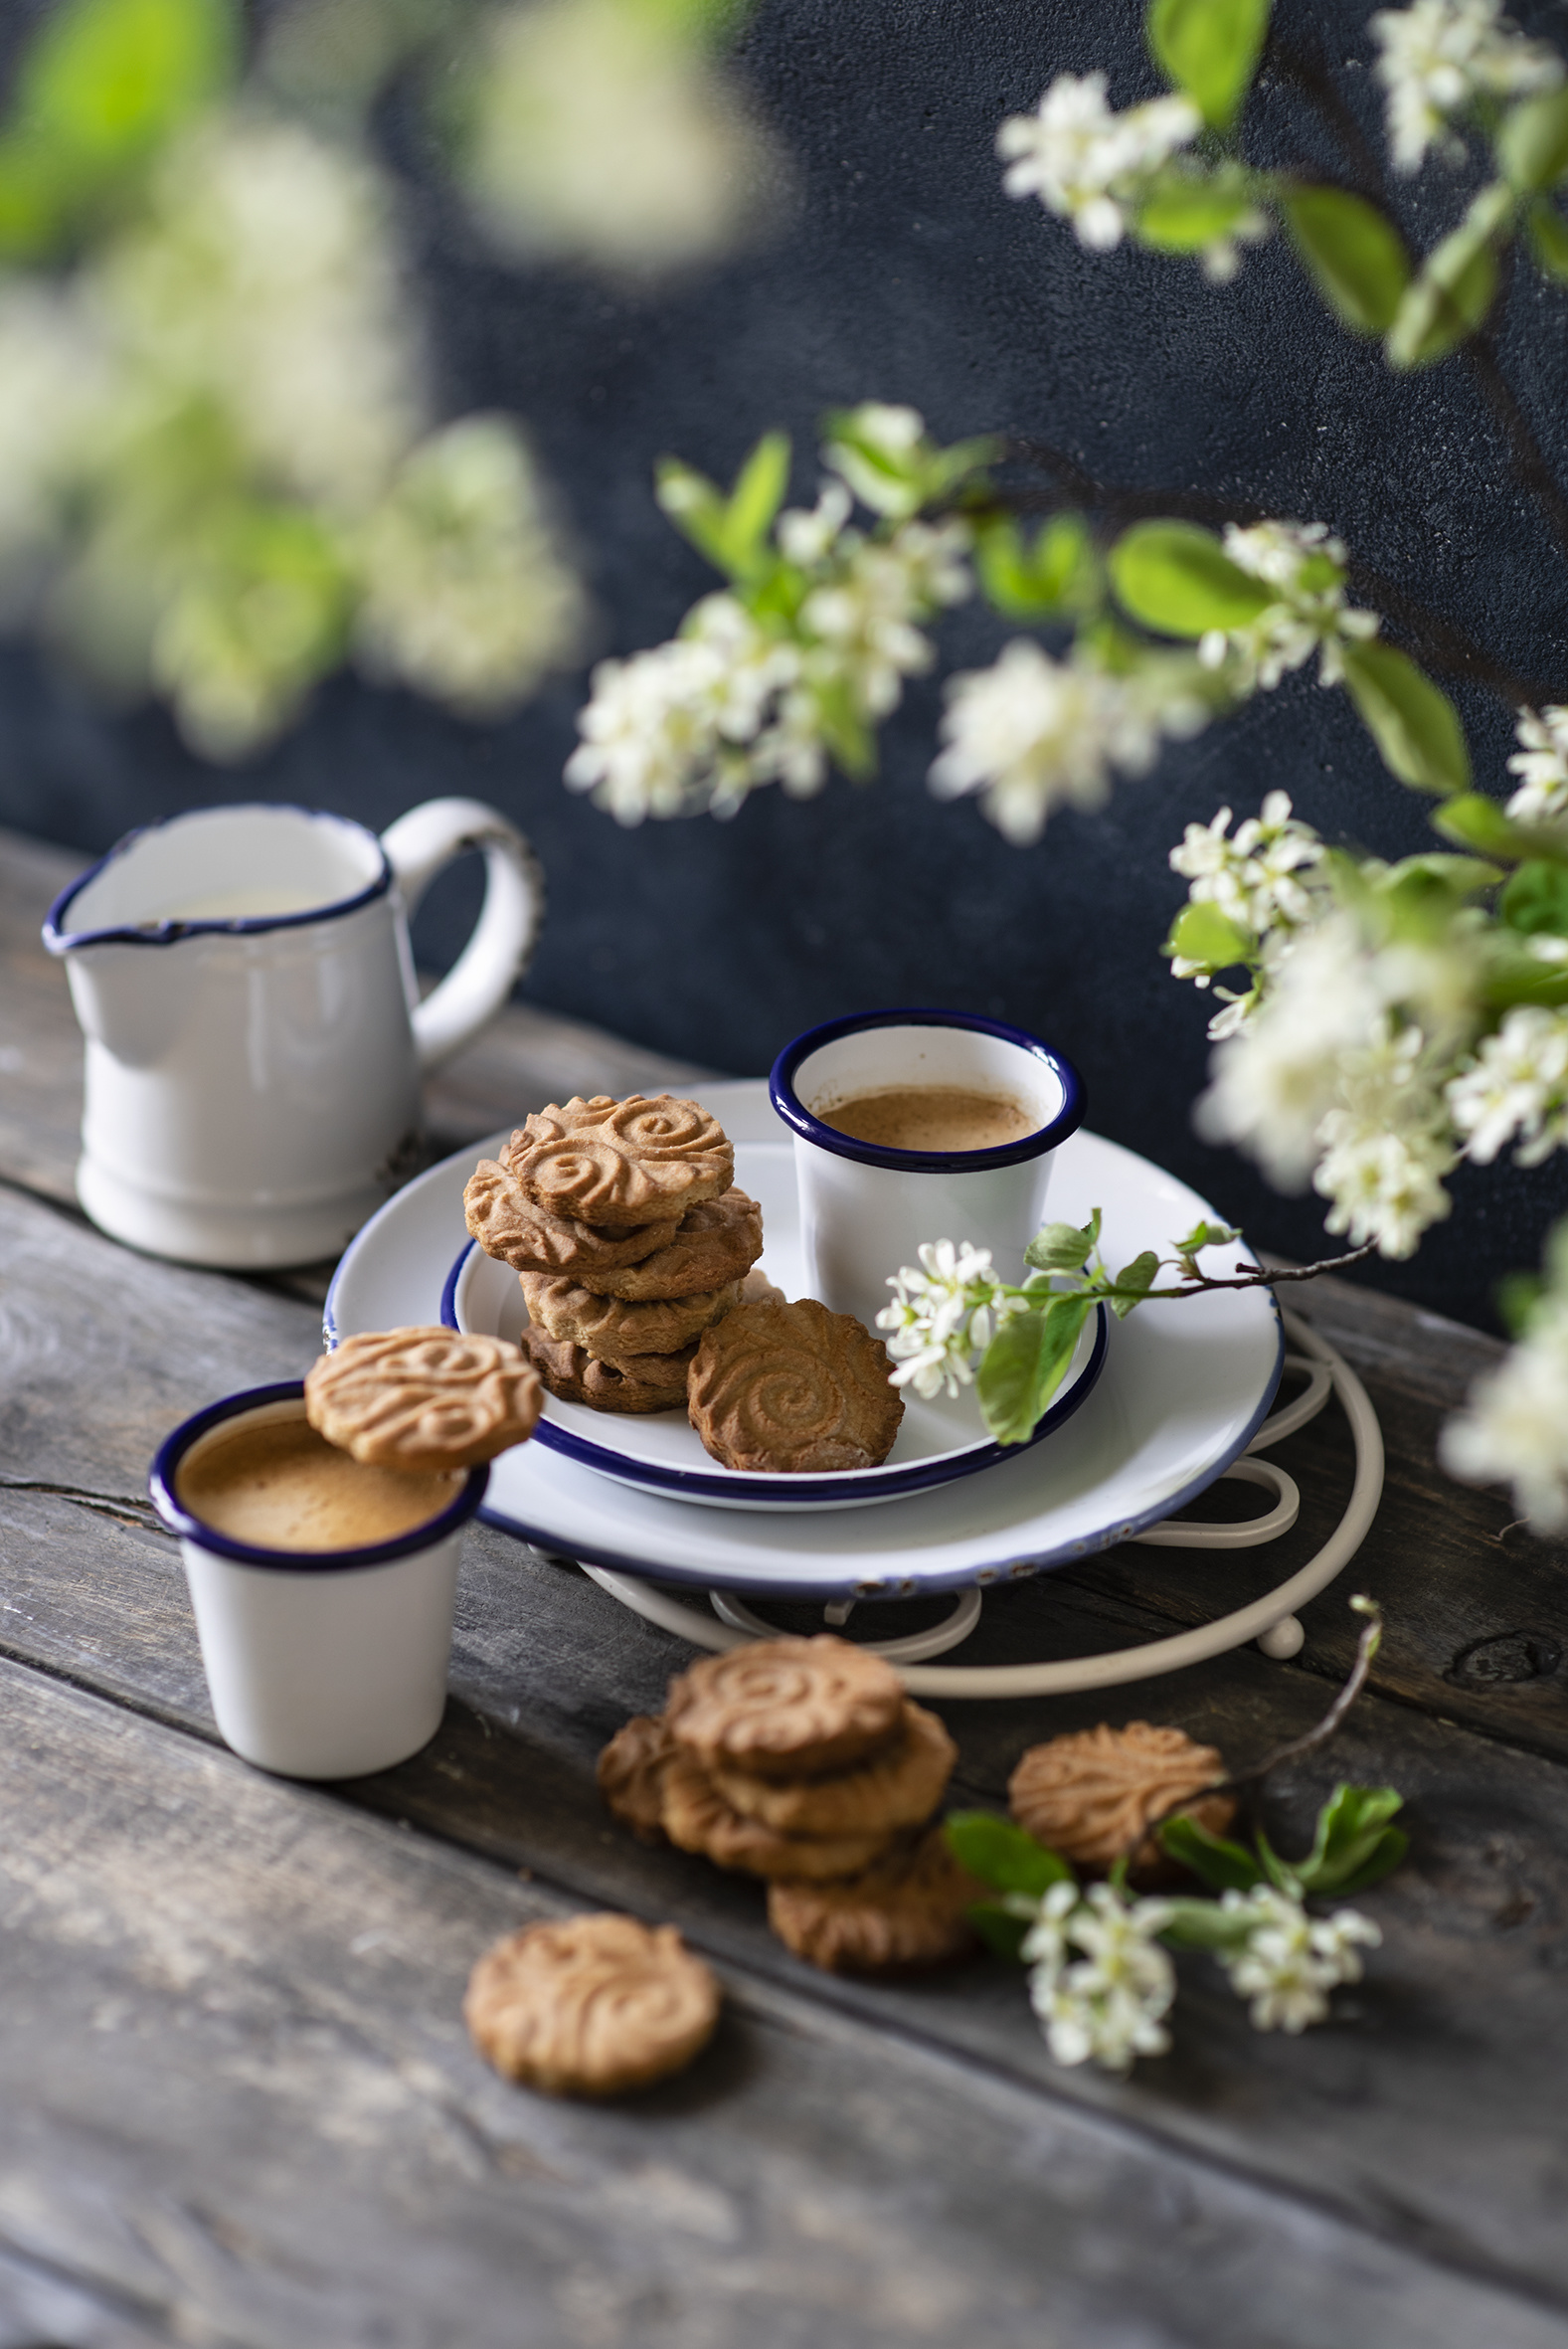 Pictures Coffee Cappuccino pitcher Mug Food Cookies Wood planks  for Mobile phone jugs Jug container boards